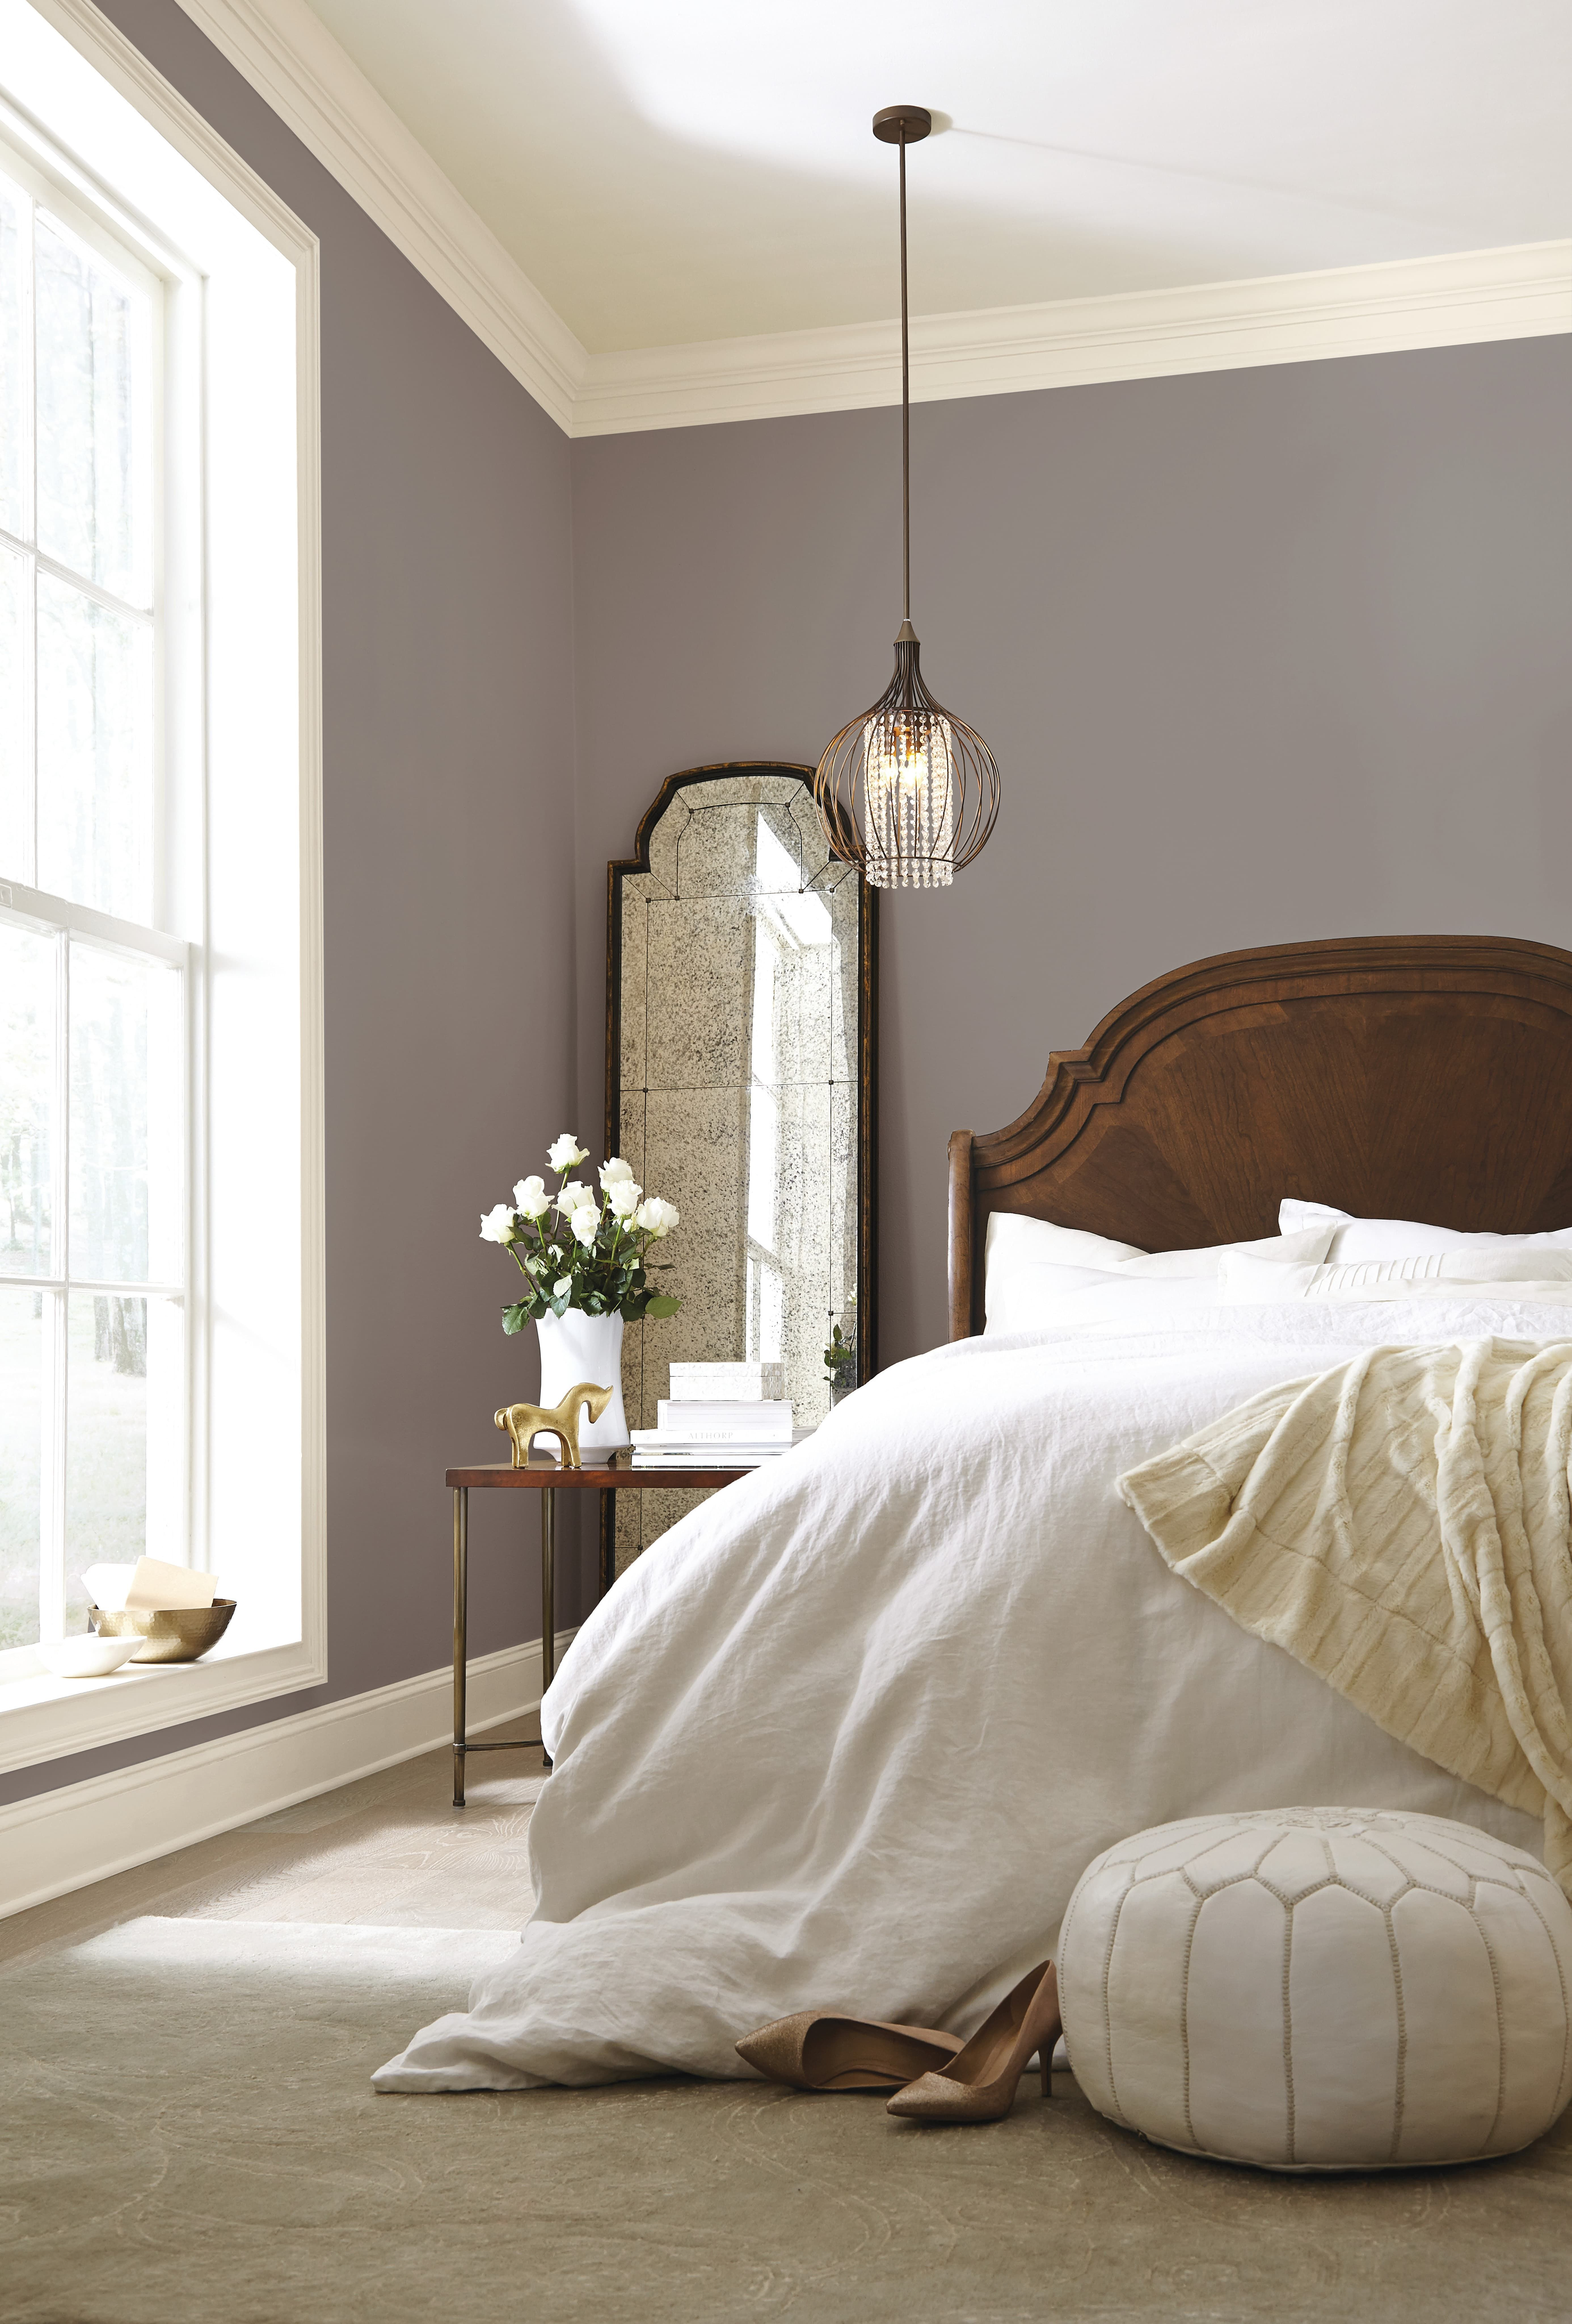 the 2017 colors of the year, according to paint companies | taupe